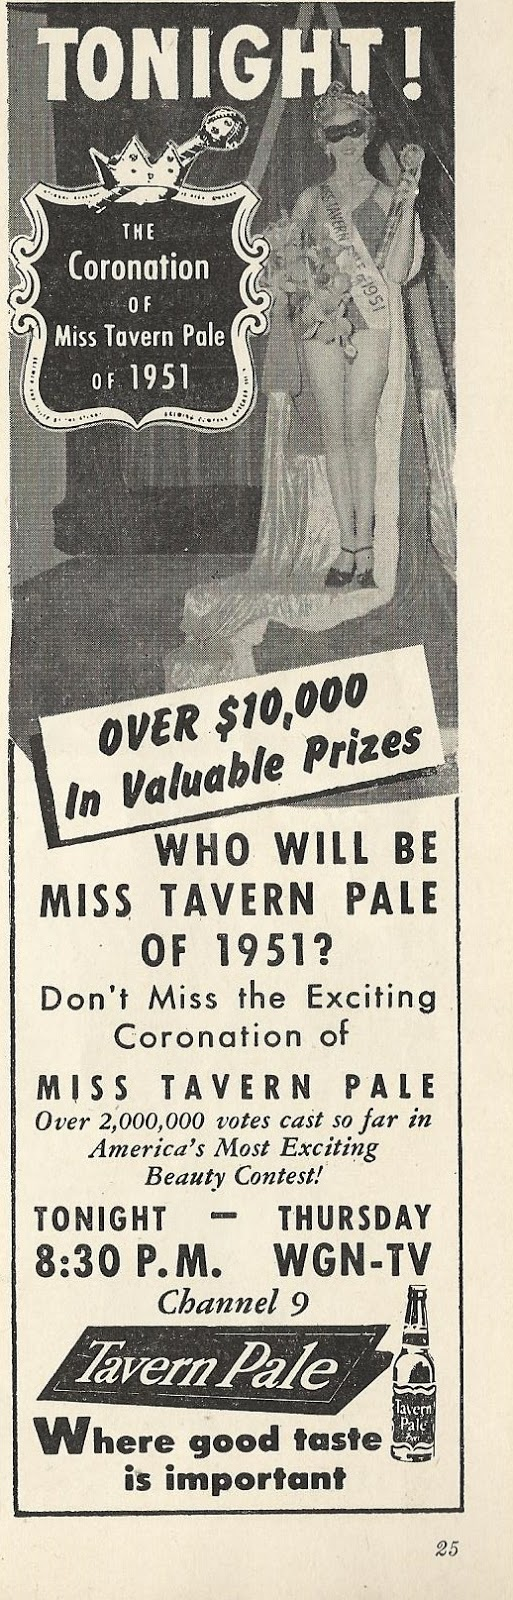 The TV Guide Historian: 1951 Miss Tavern Pale Ad